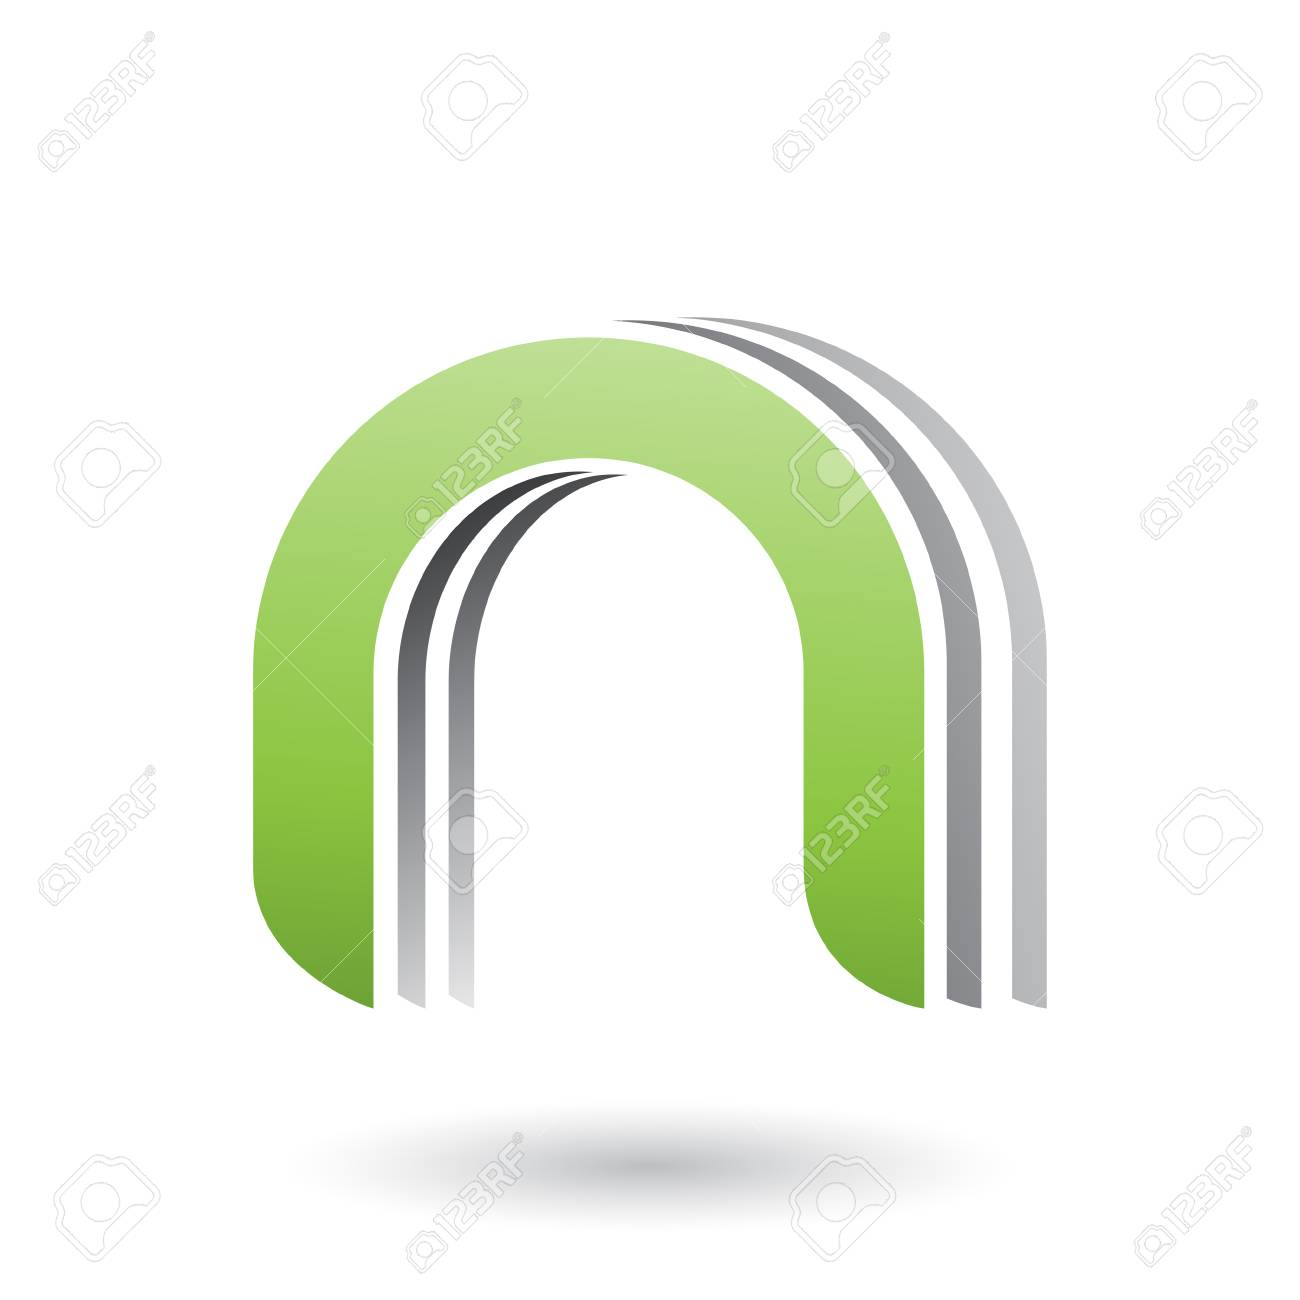 Vector Illustration of a Green Layered Icon for Letter N isolated on a White Background - 104393030